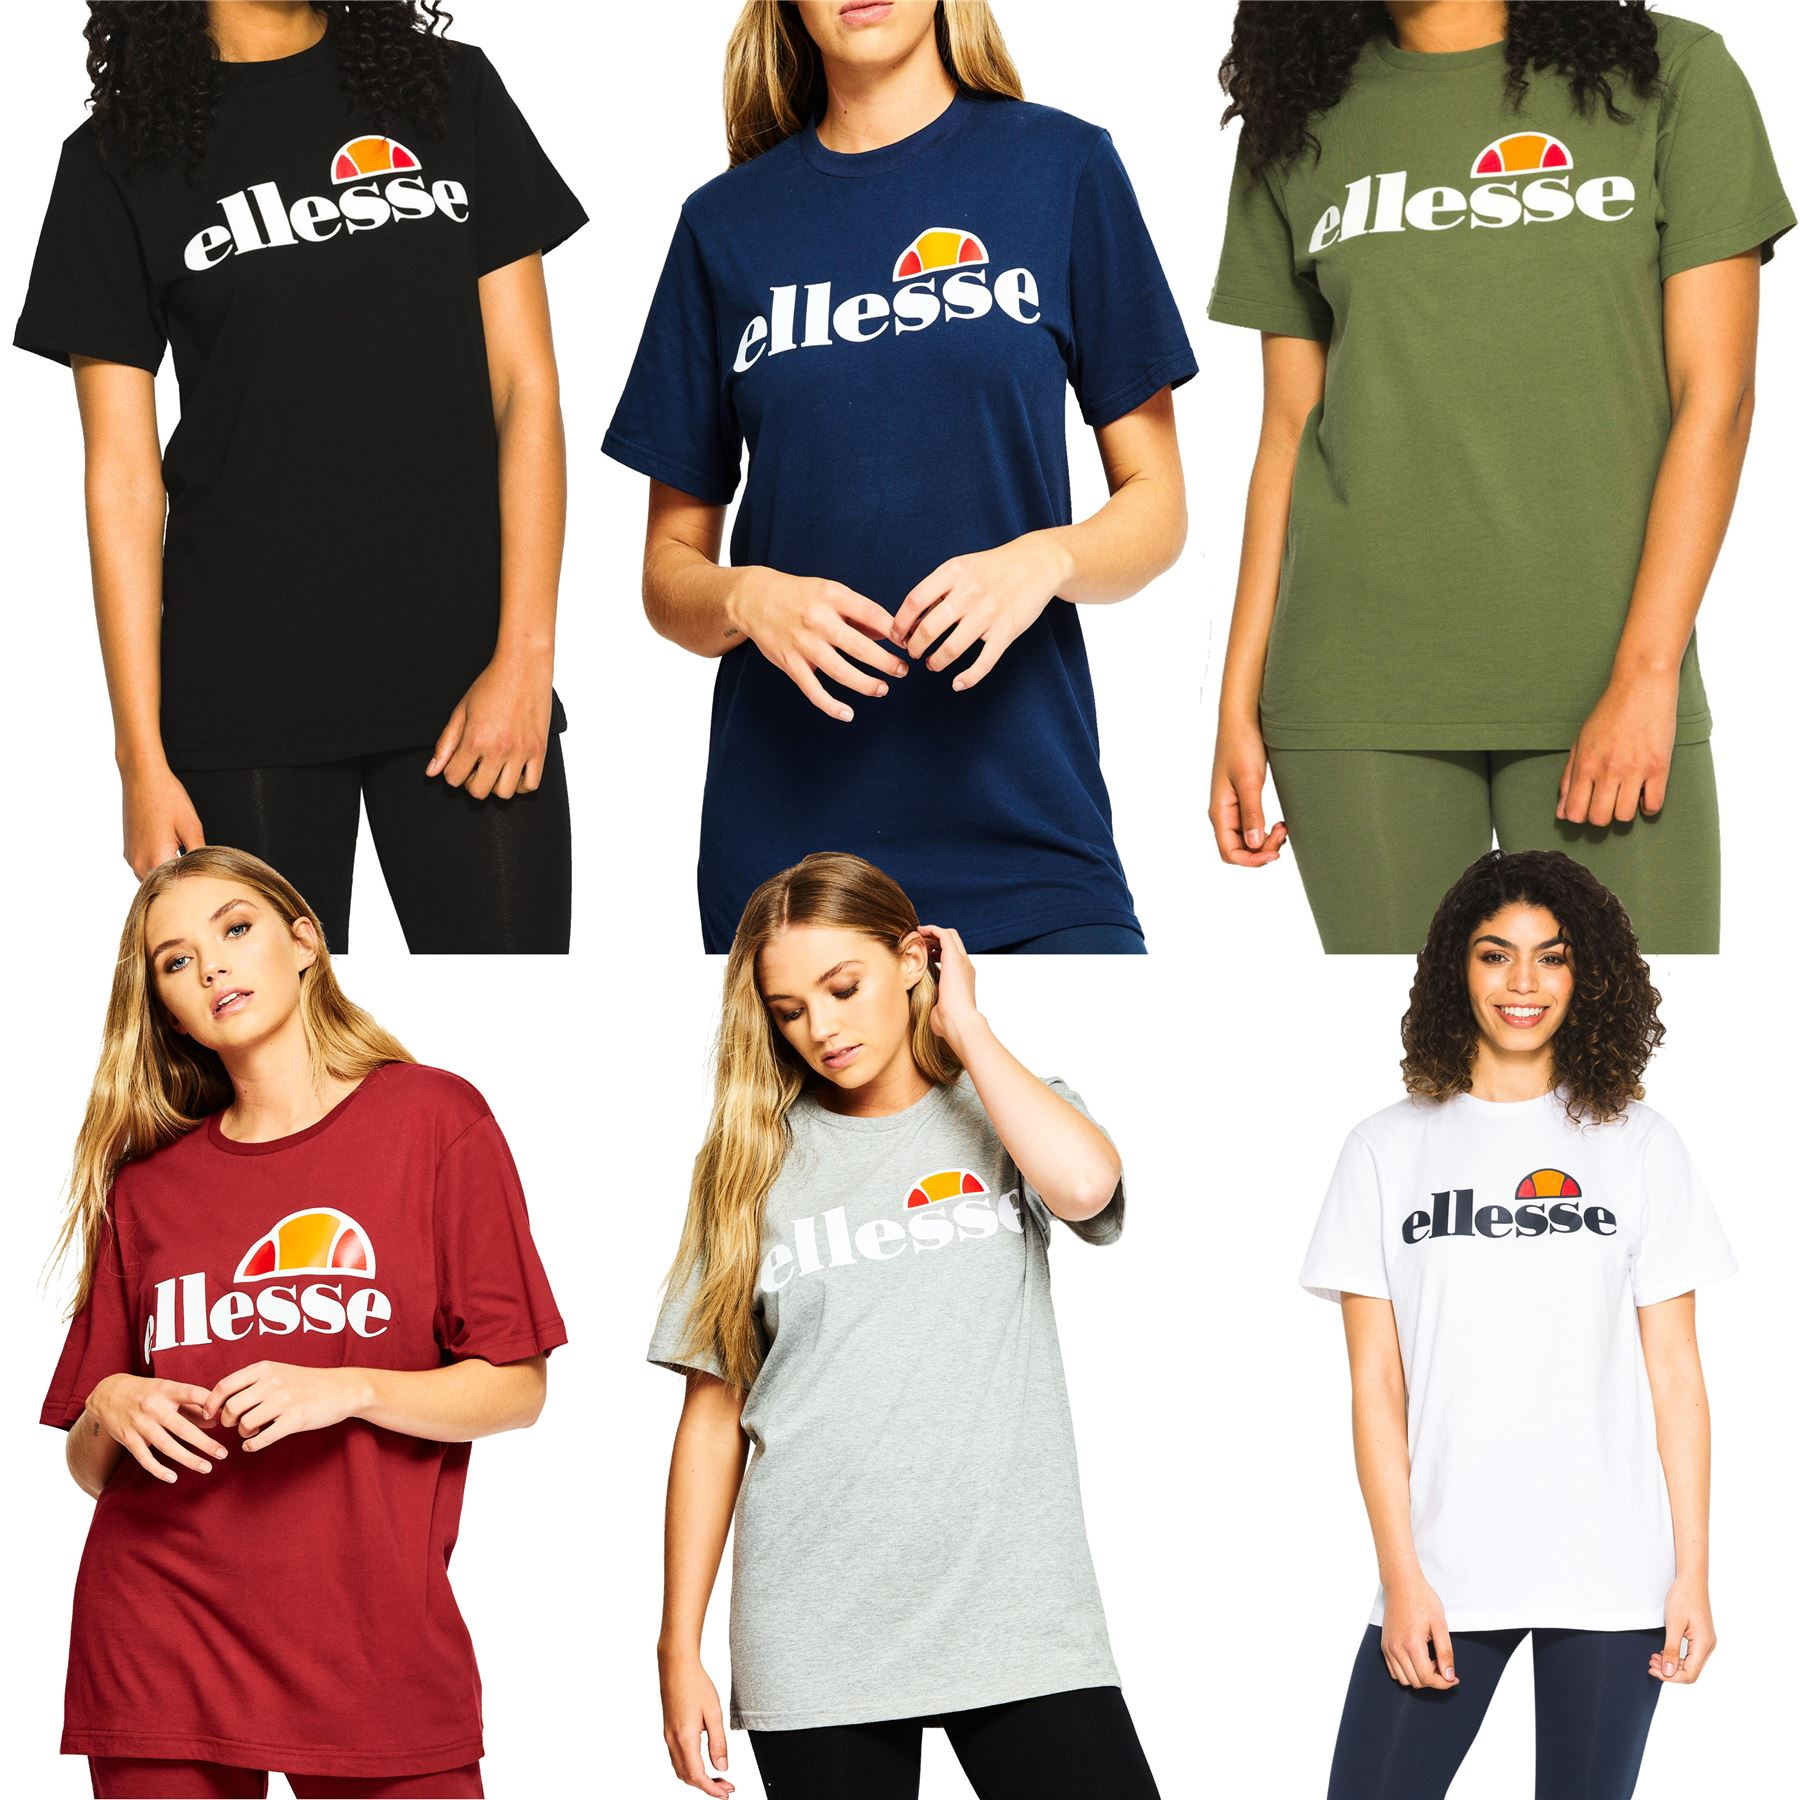 1711046212 Details about Ellesse Women's Albany T-Shirt - Black, White, Green, Grey,  Blue, Red - UK 8-14